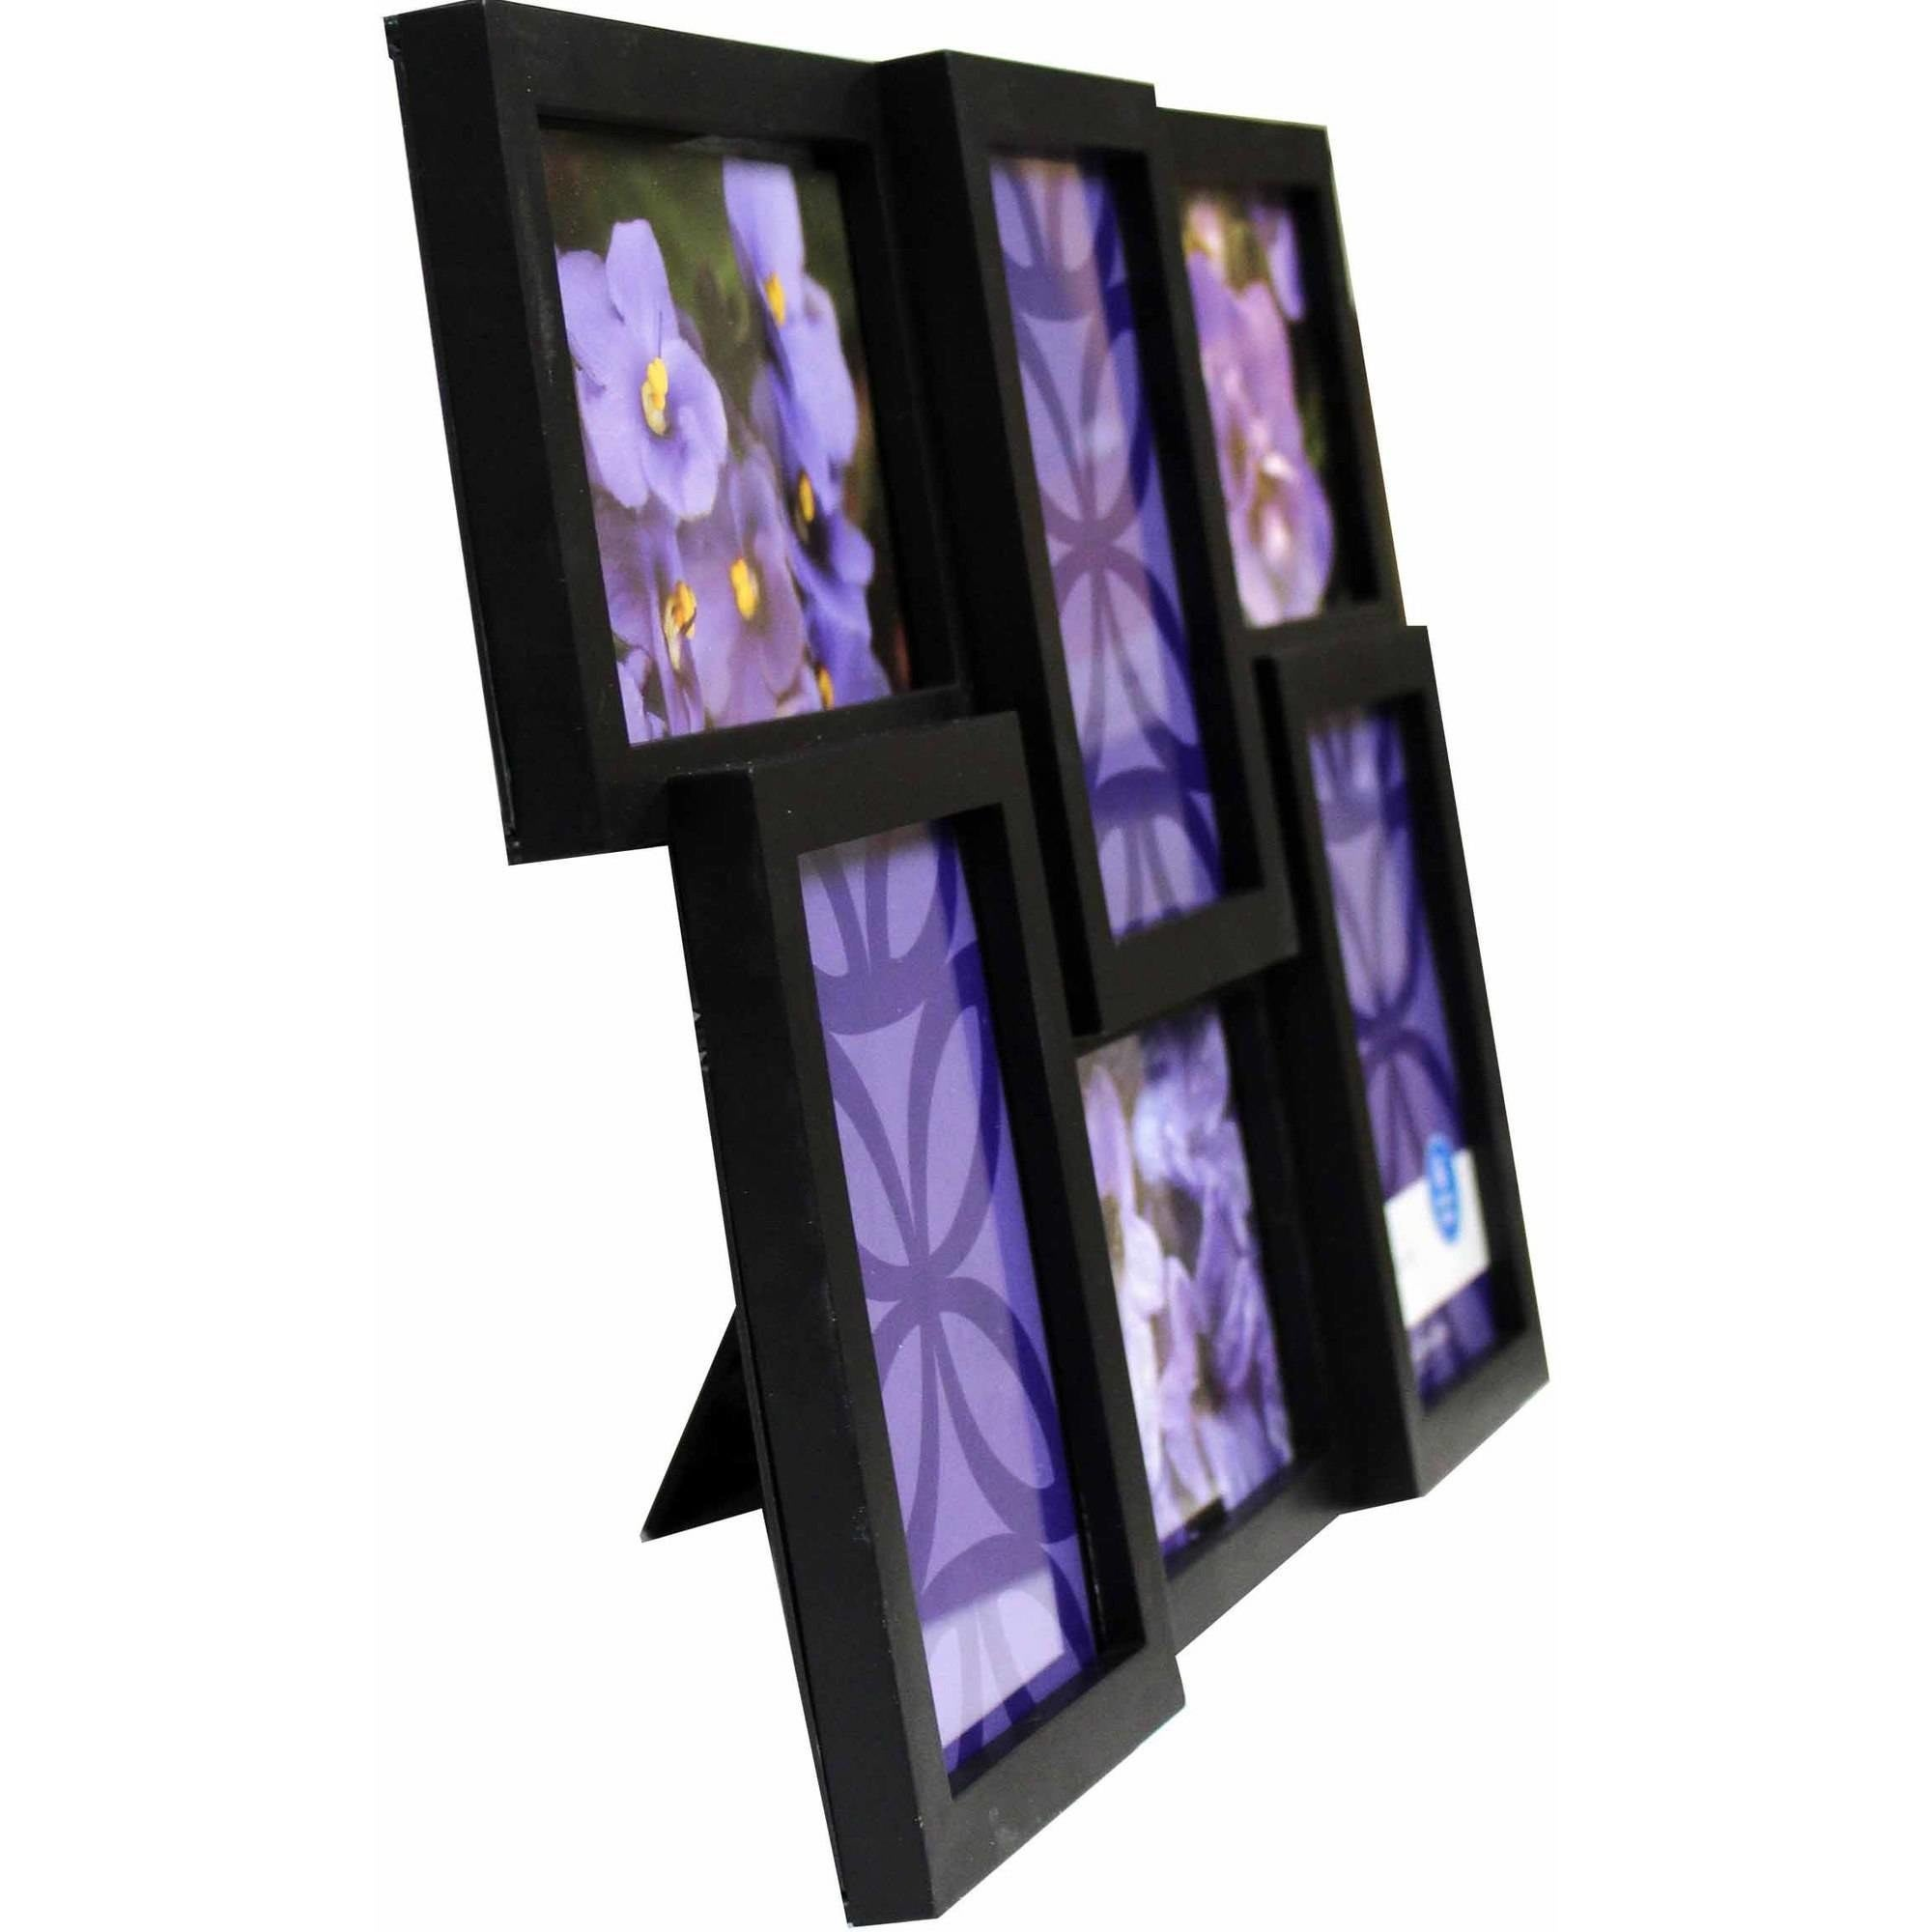 the picture frame which holds 6 individual photos